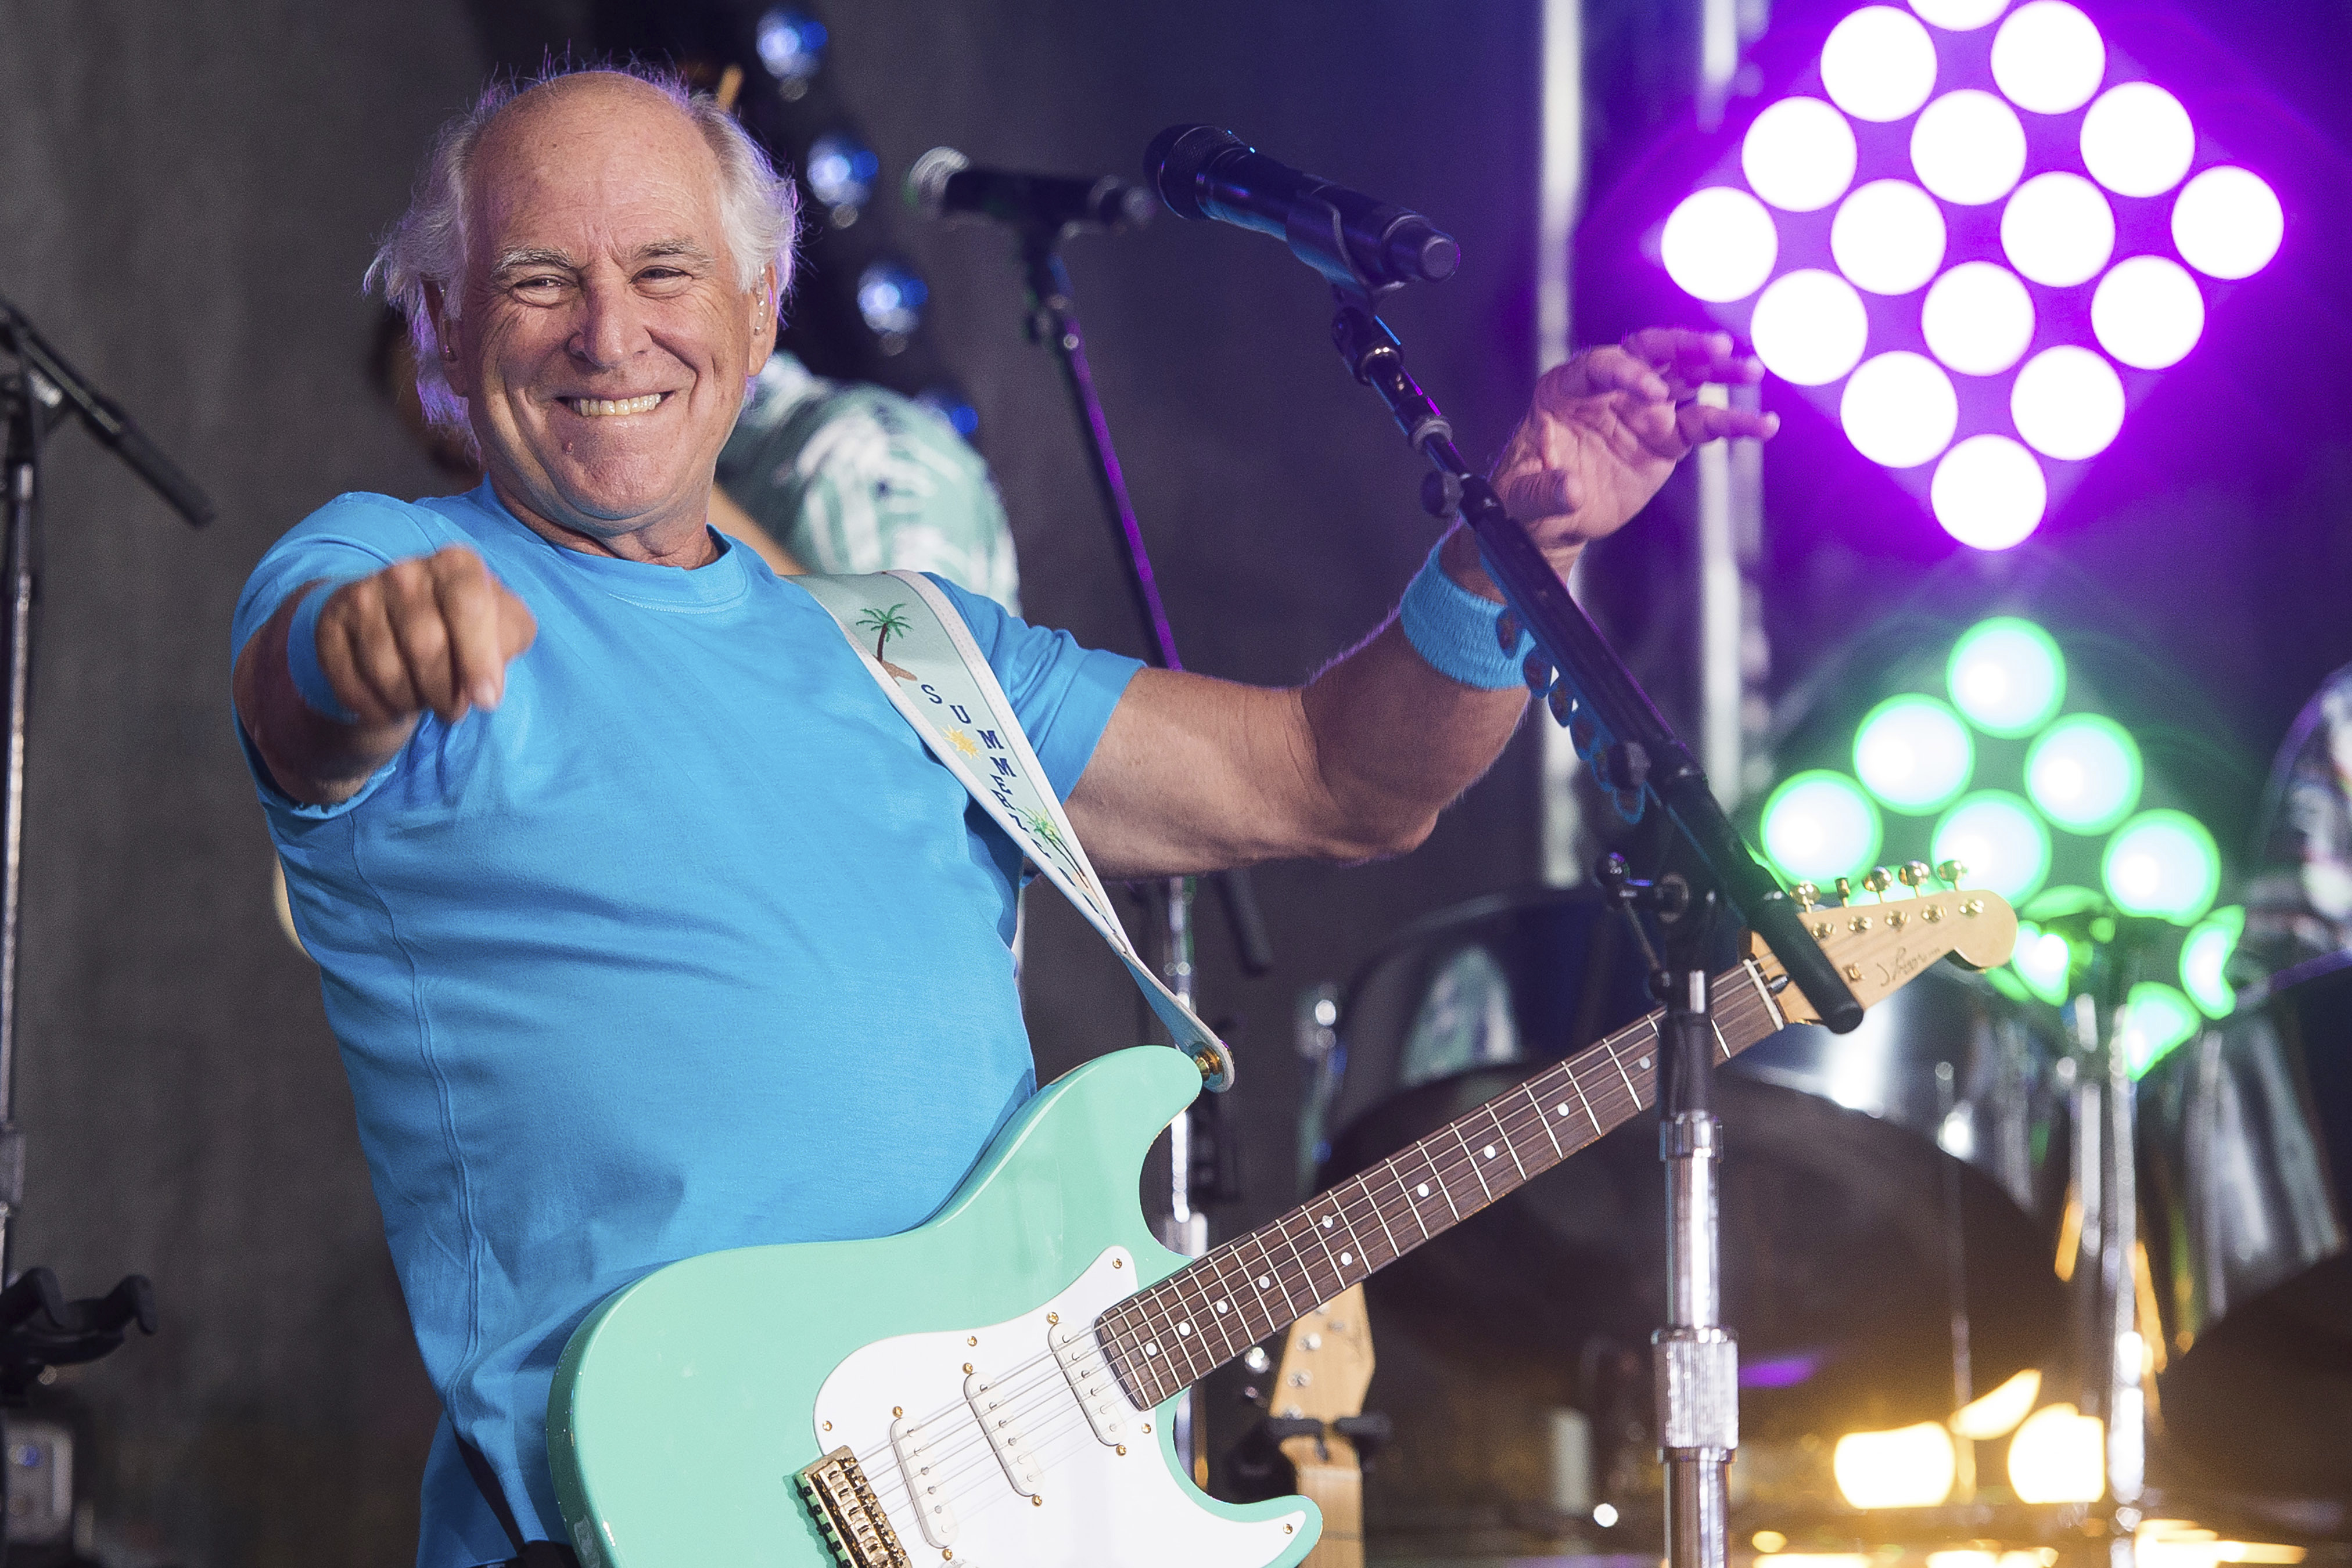 Jimmy Buffett returns to the region with a show at the Xfinity Center on August 14.